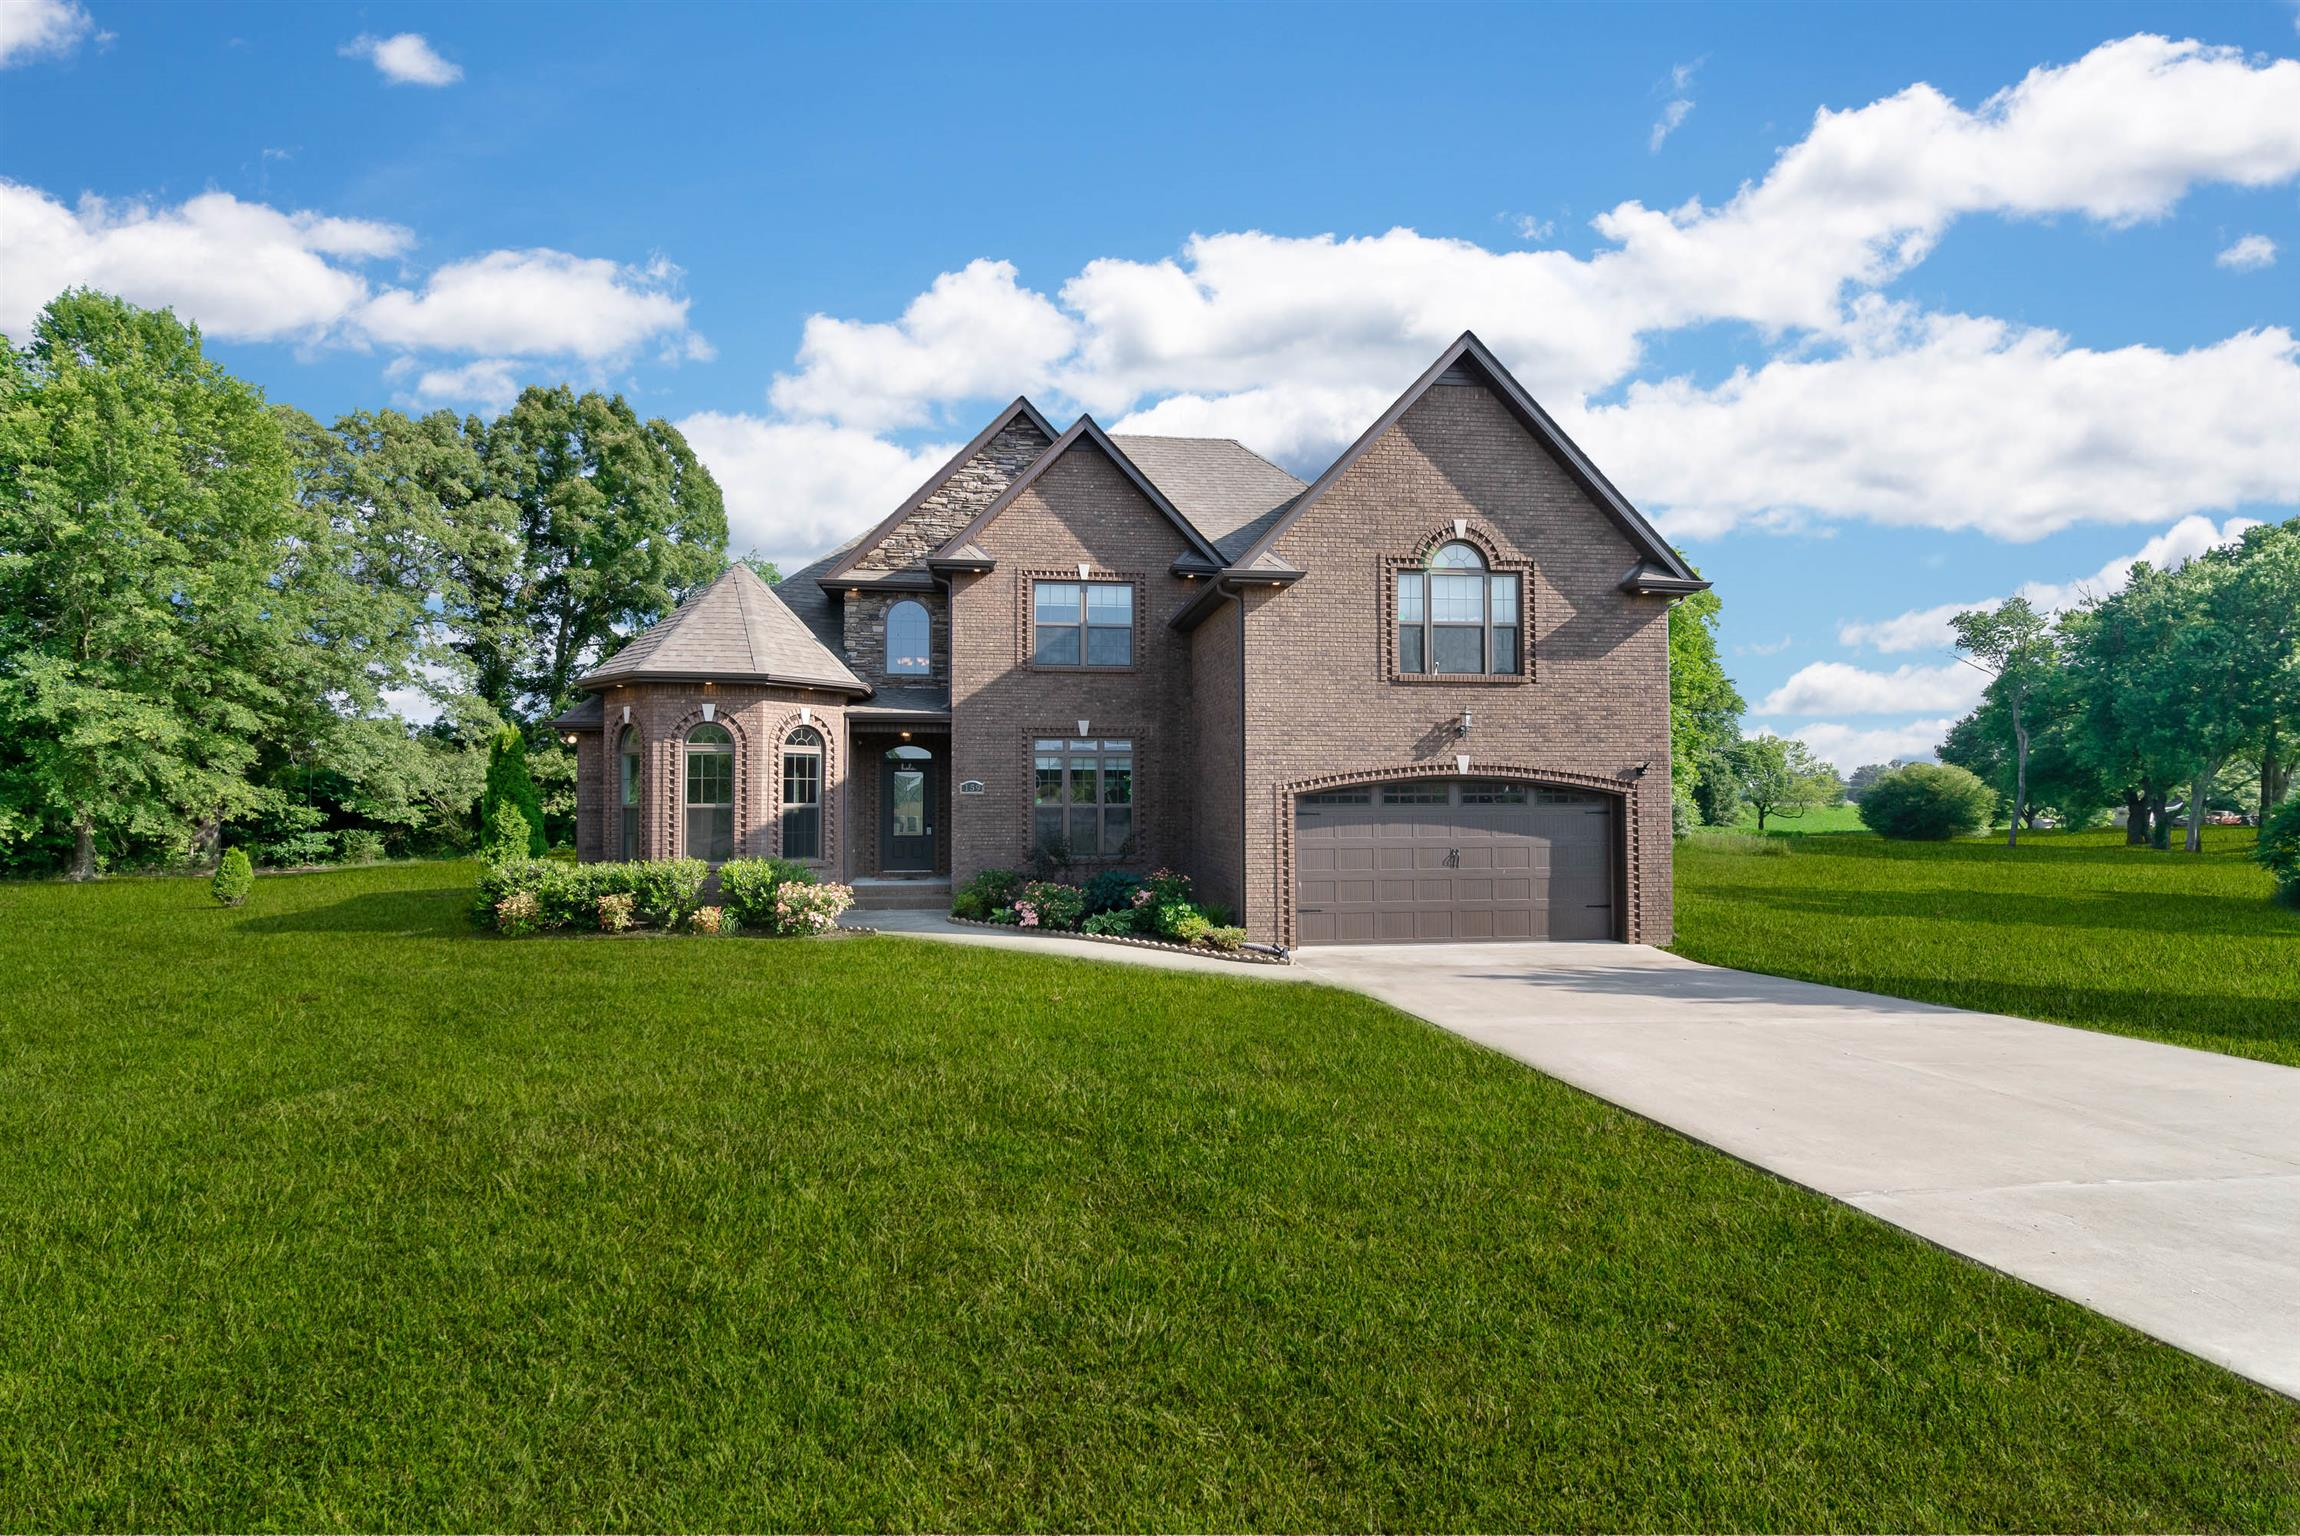 159 Kendall Ct, Pleasant View, TN 37146 - Pleasant View, TN real estate listing